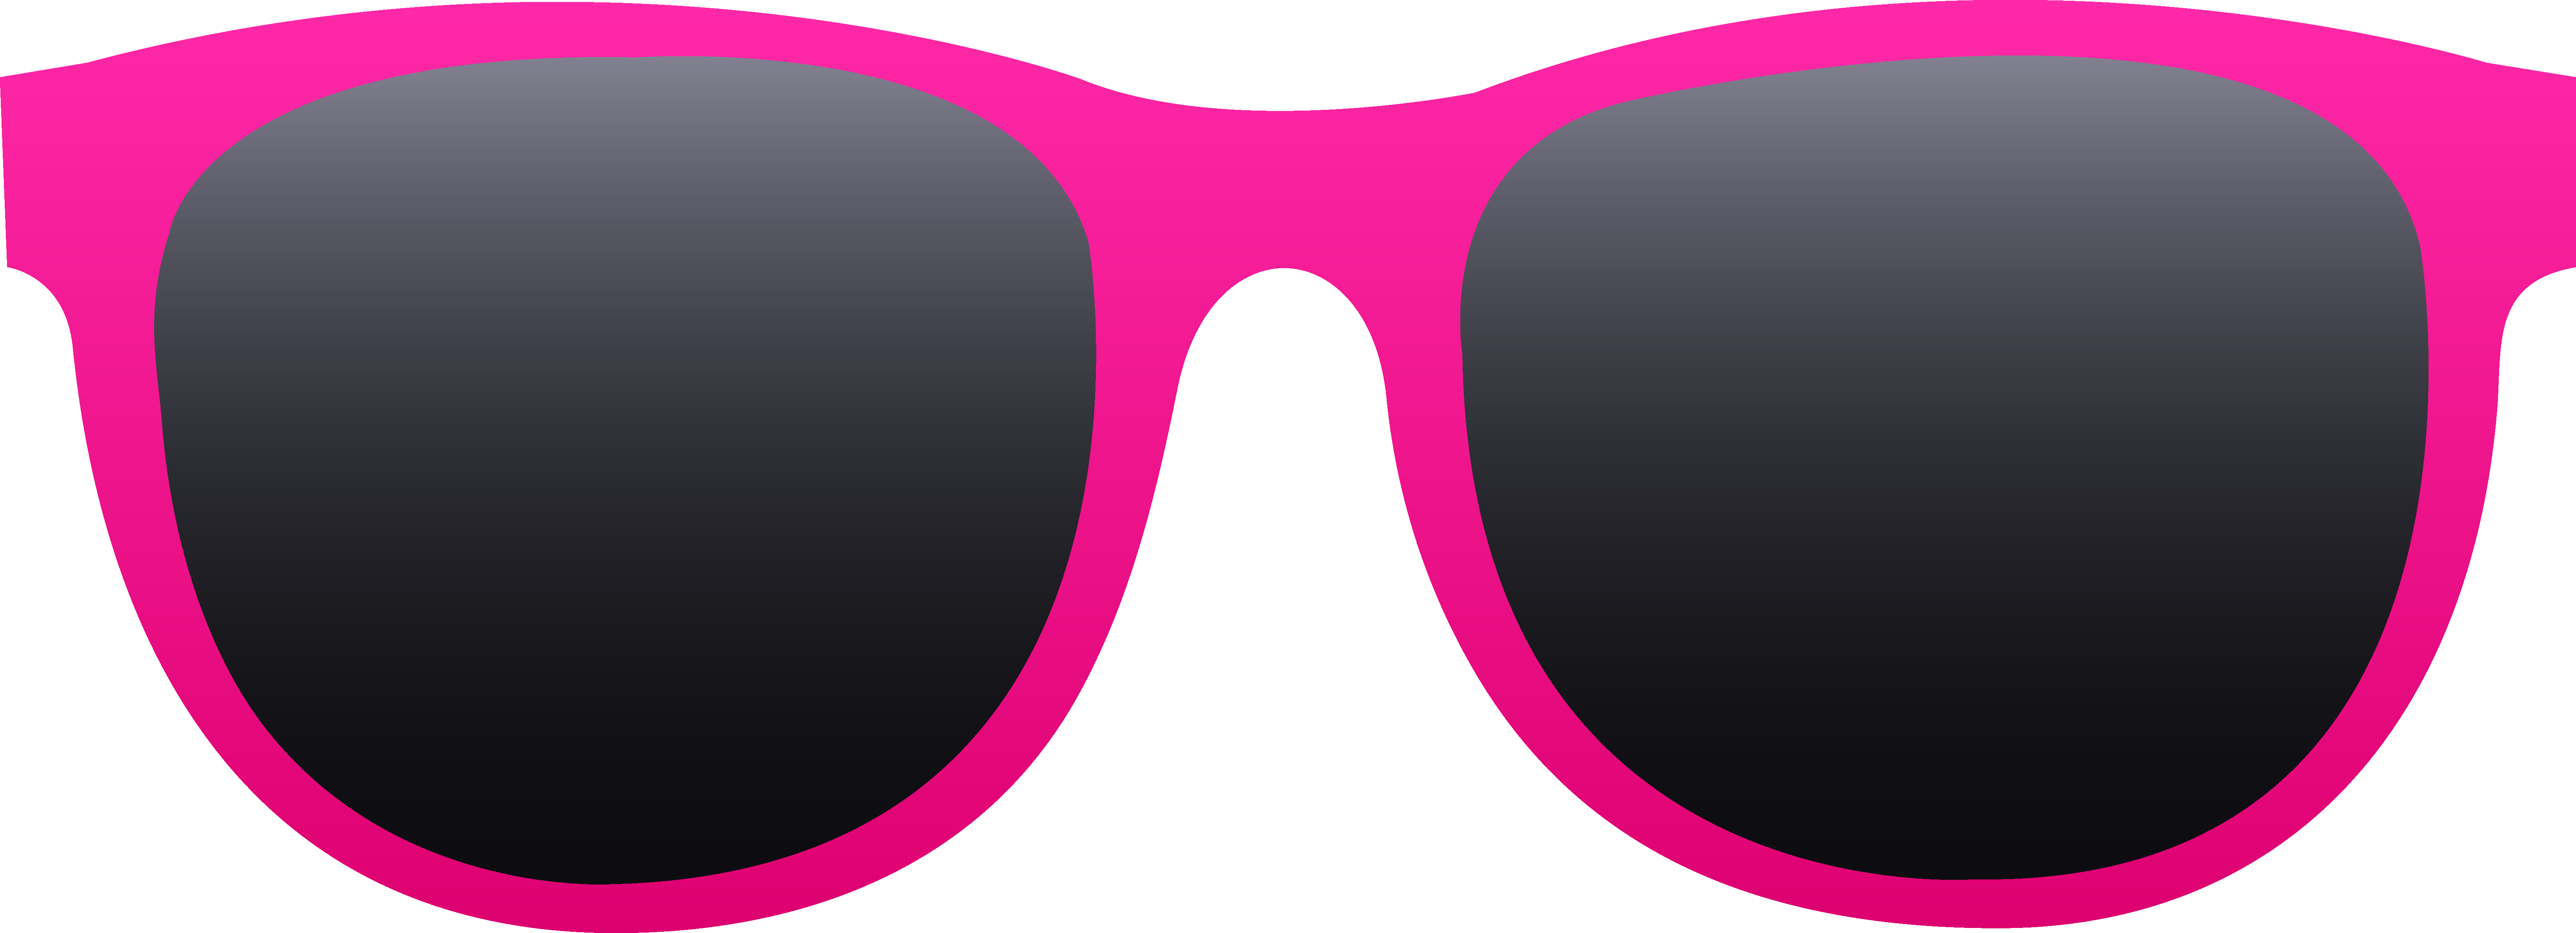 Sunglasses clipart #7, Download drawings